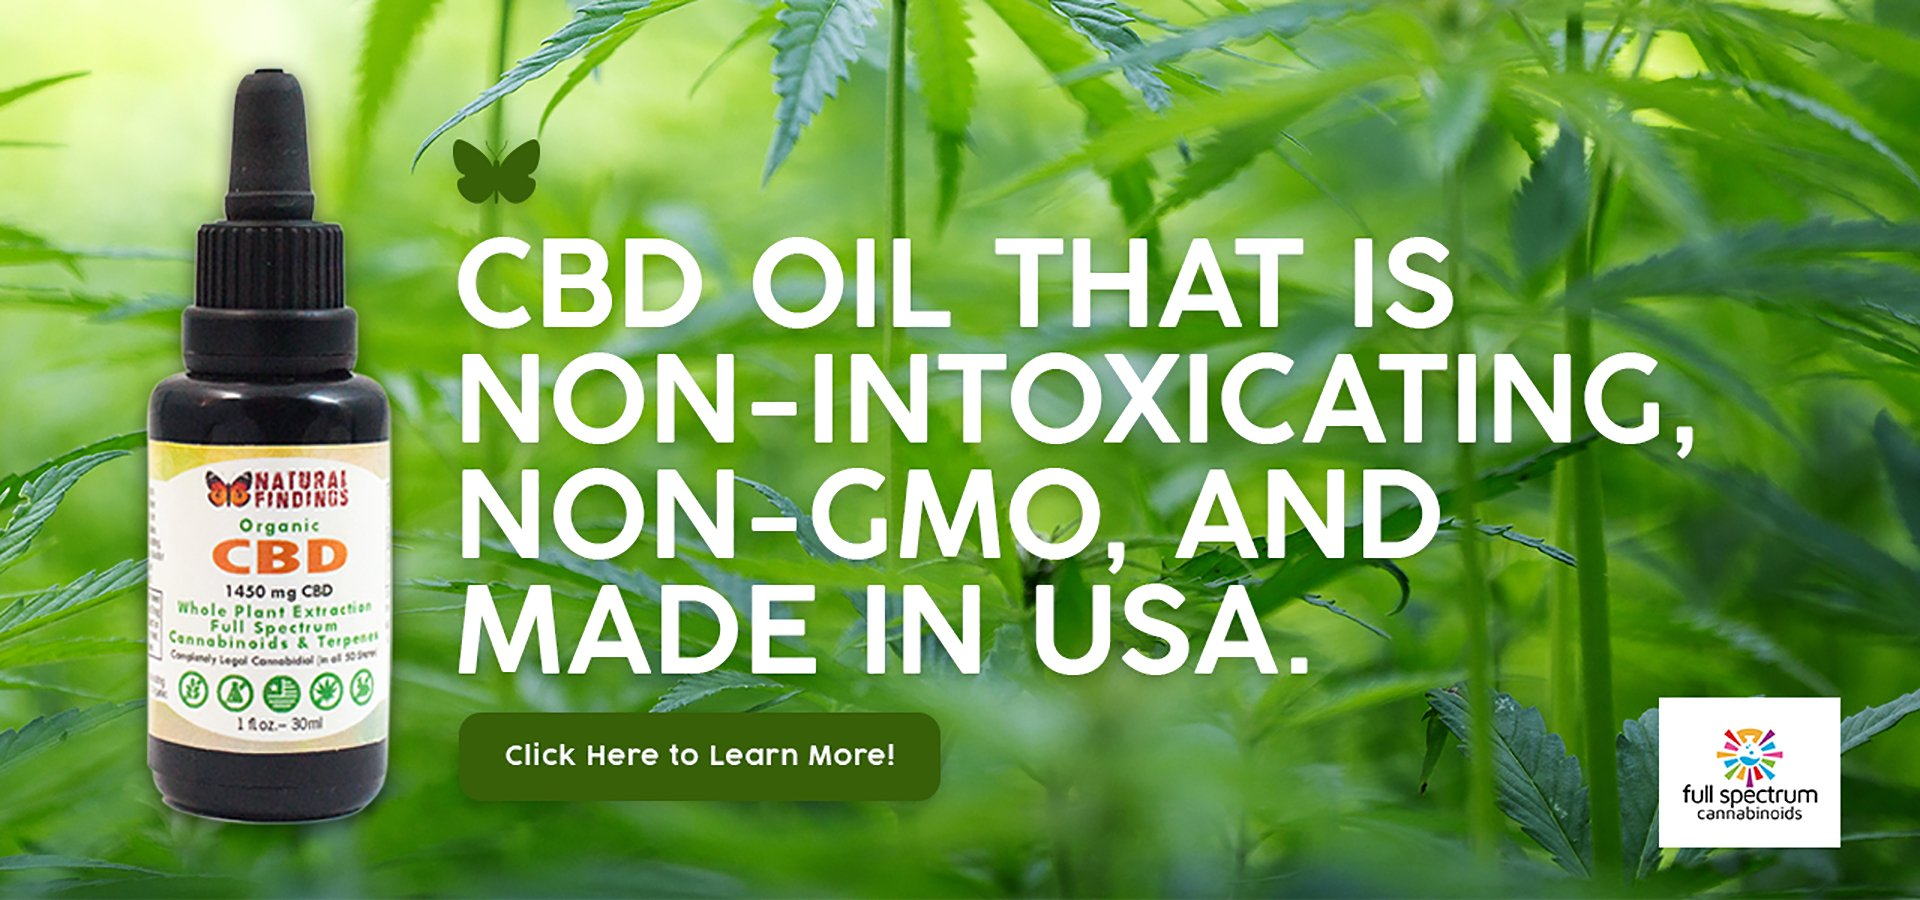 Organic CBD Oil Natural Findings Non-gmo Made In Usa